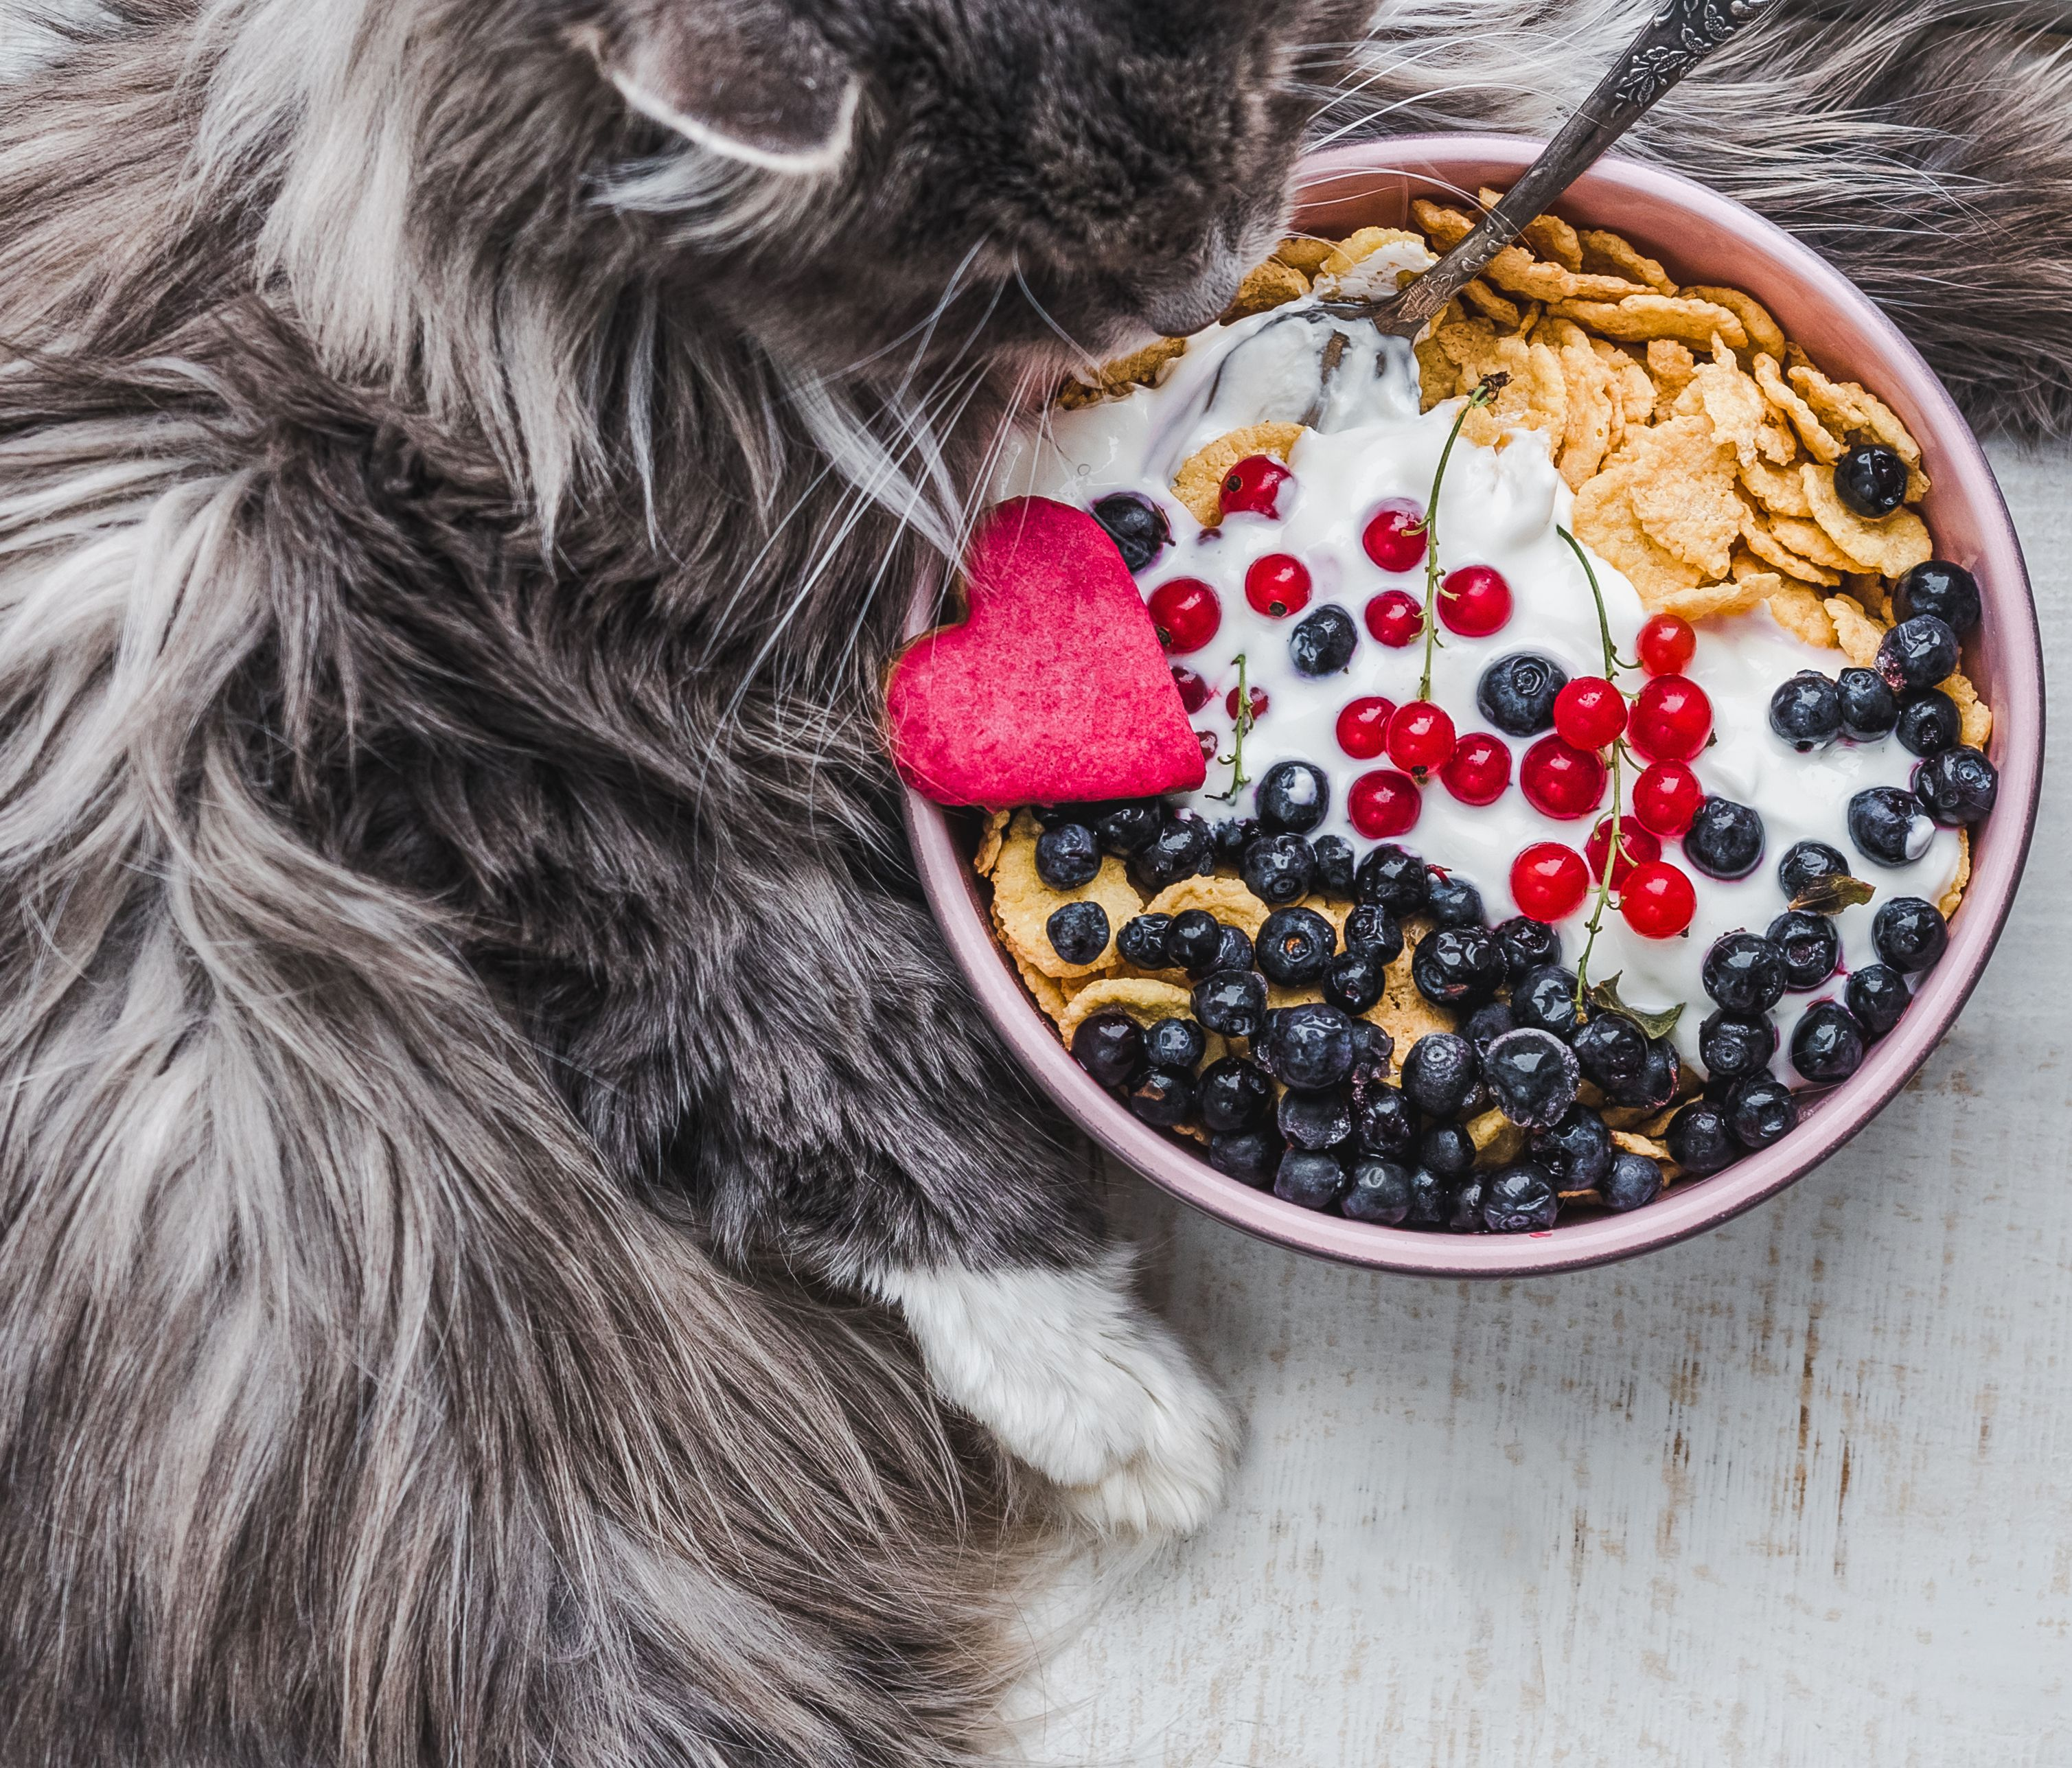 Can Cats Eat Yogurt? Is Yogurt Safe For Cats? CatTime in